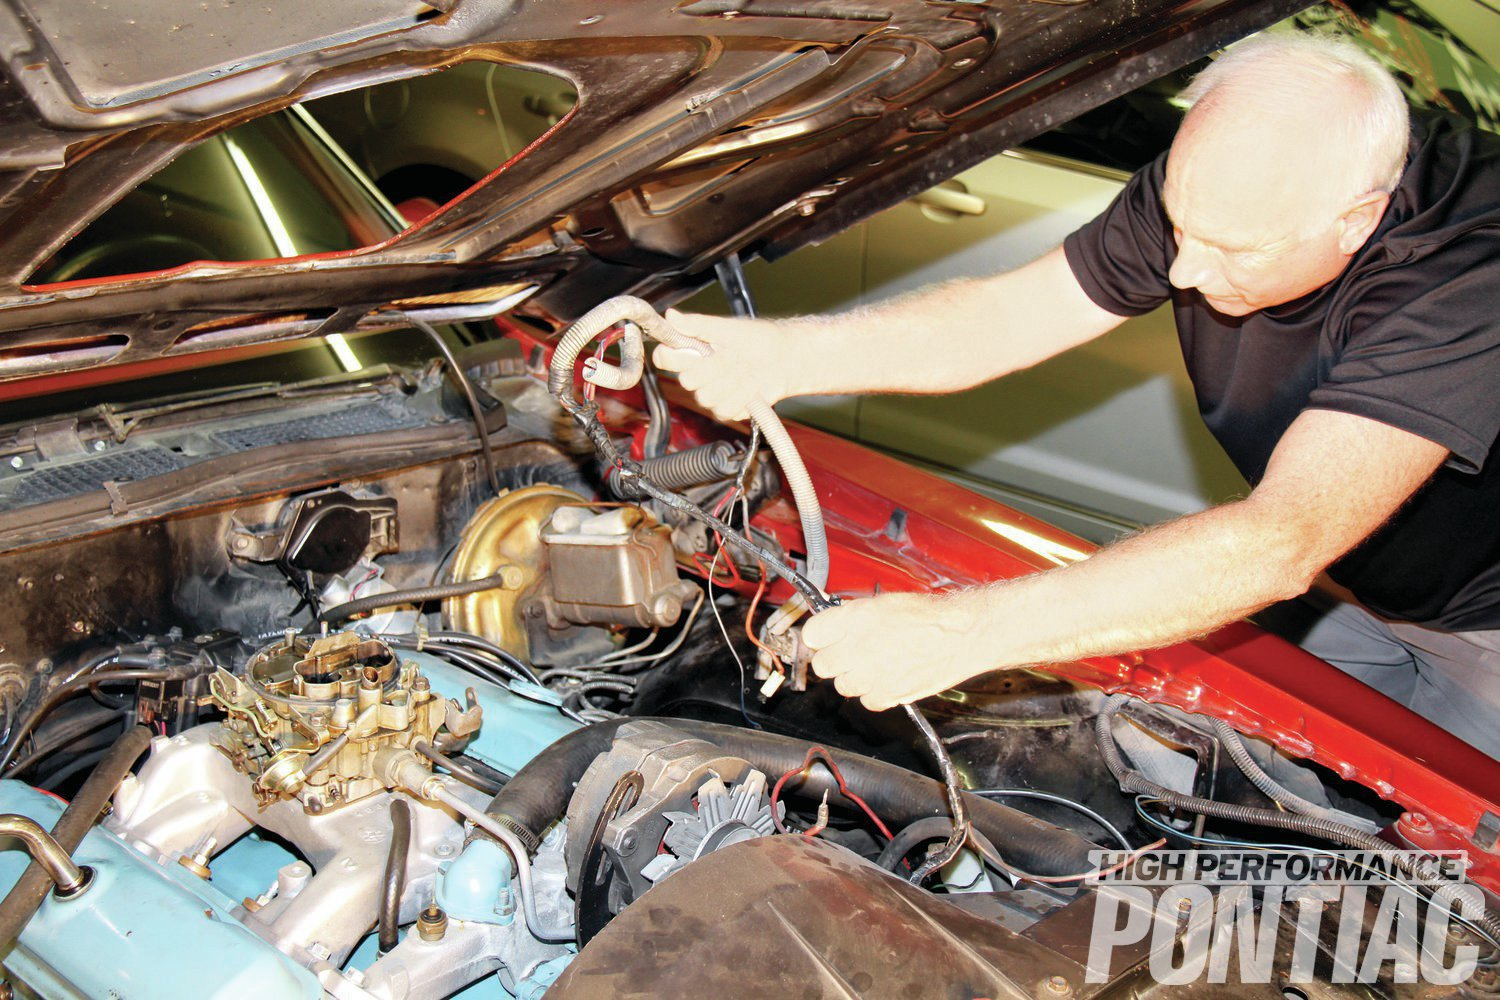 13. After snaking the wires through the spark-plug wires and vacuum hose, the entire engine harness simply lifts away.